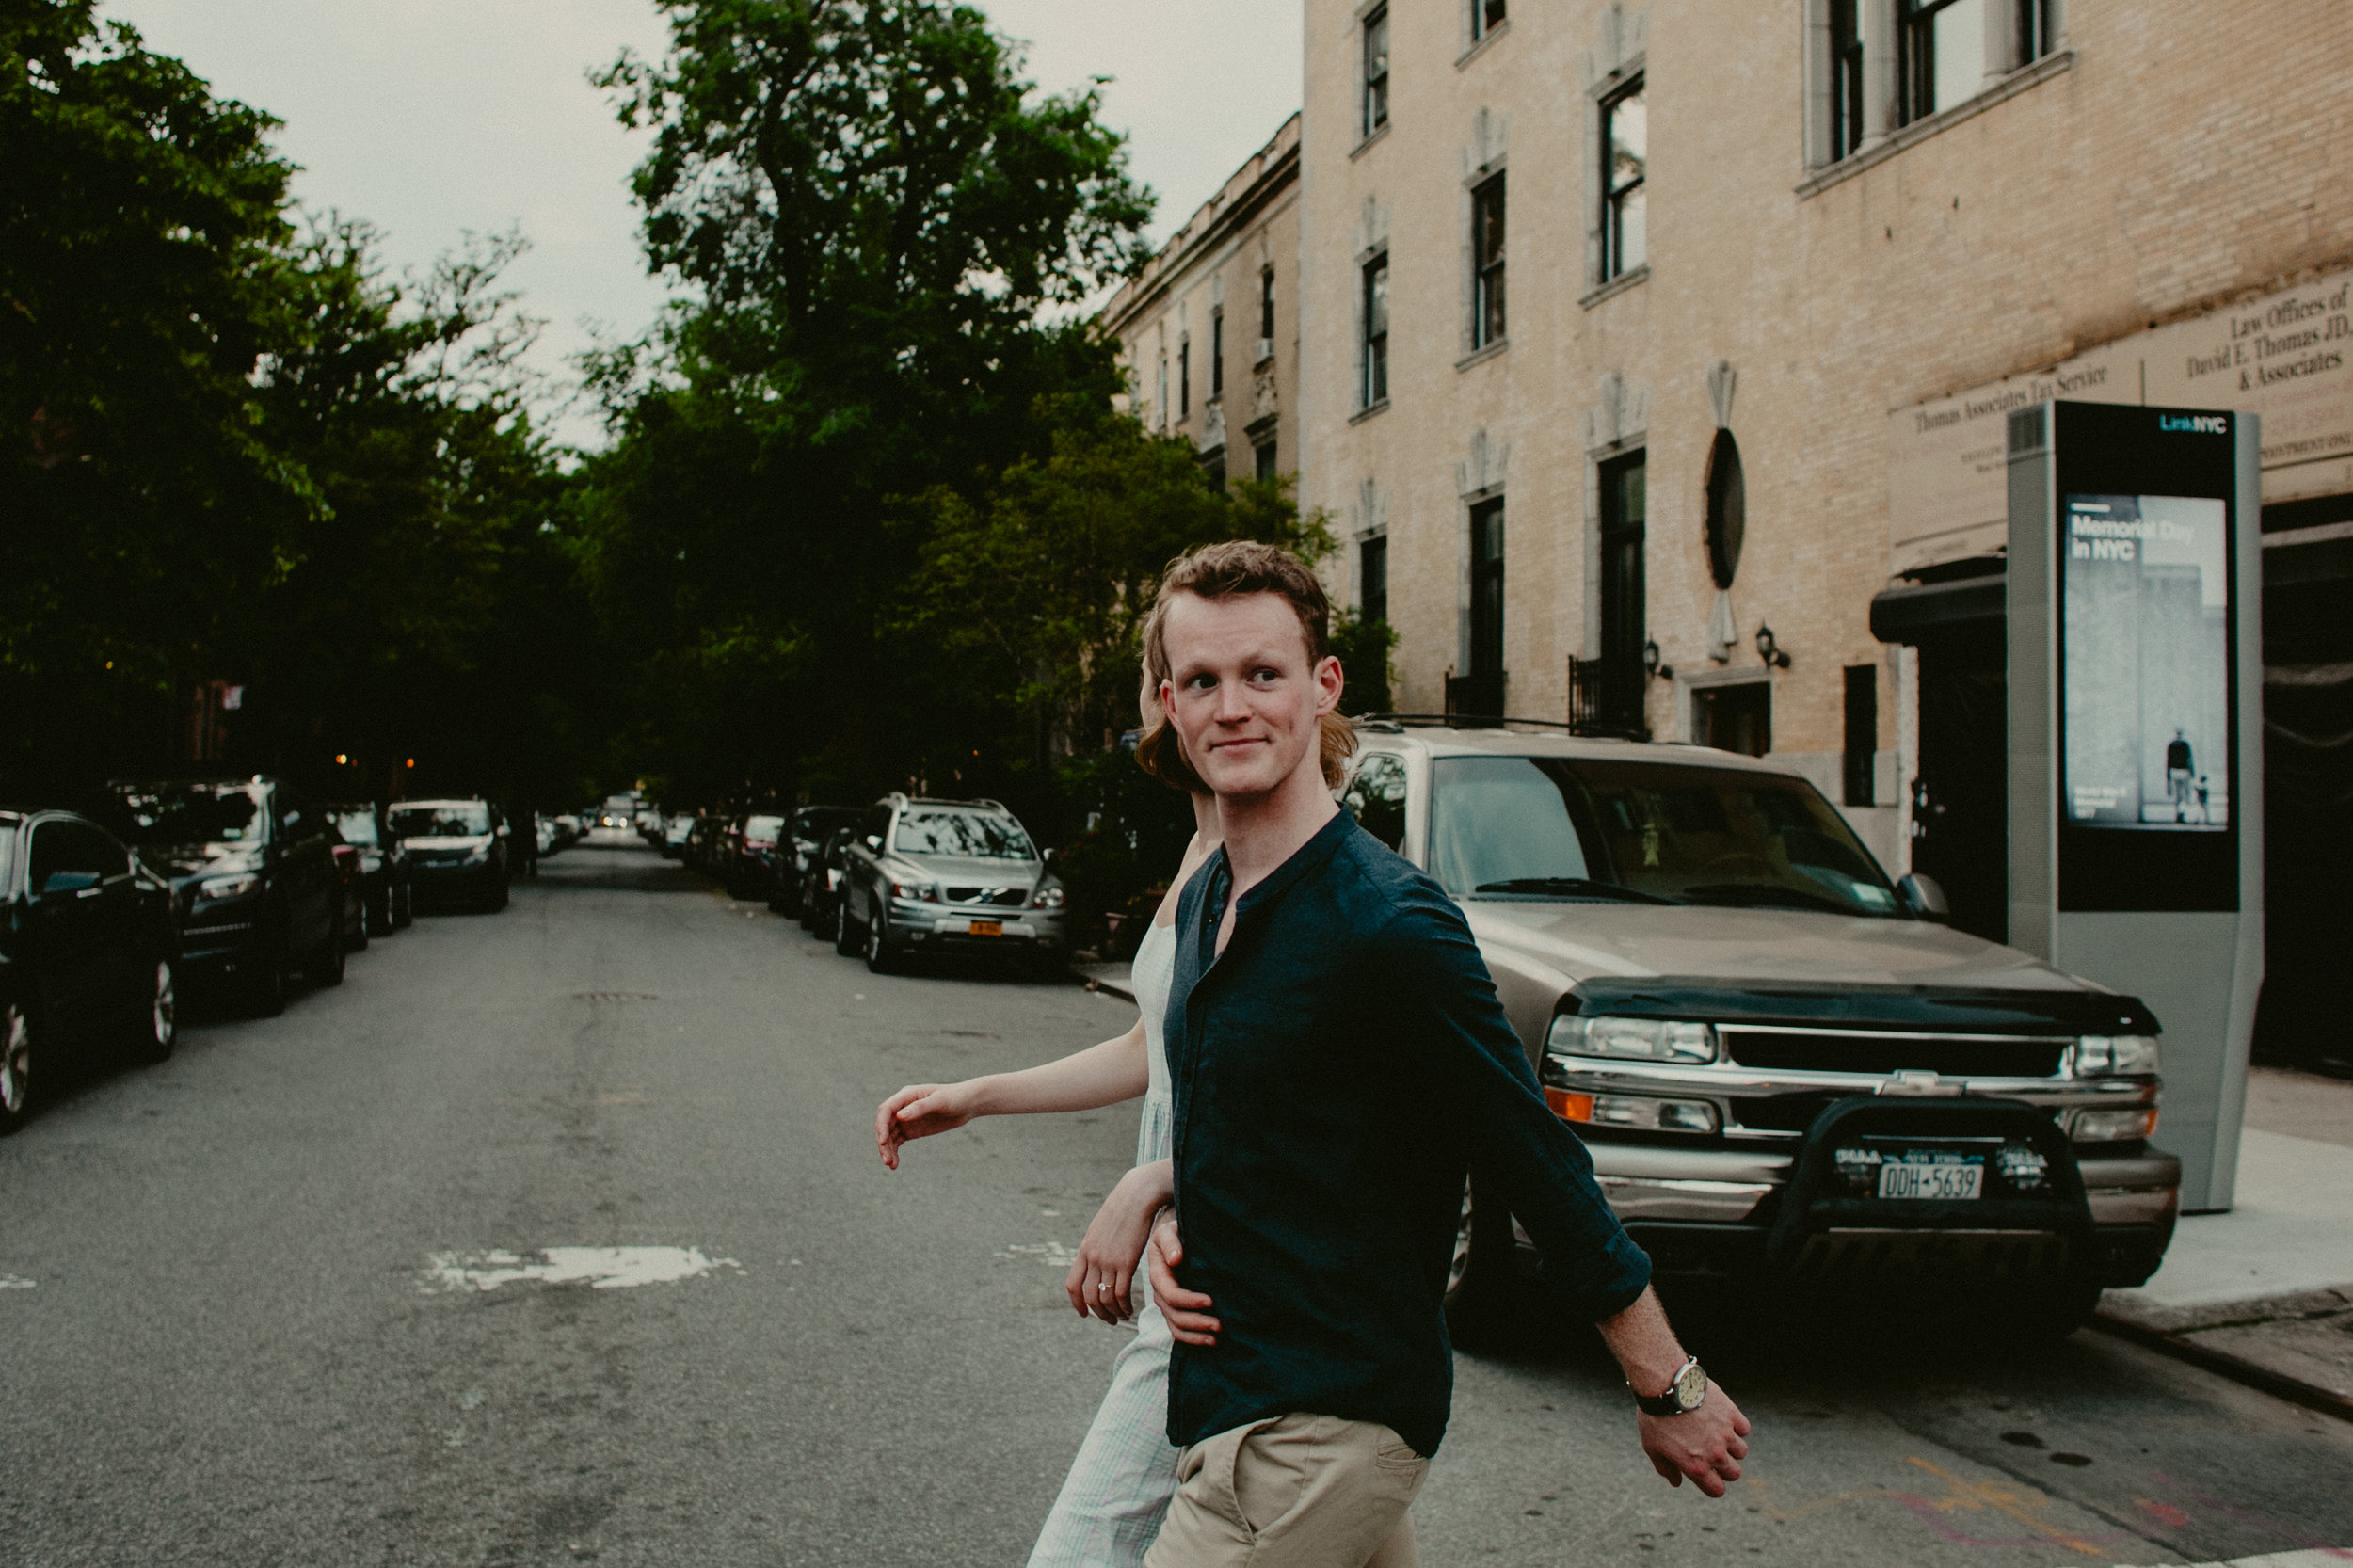 Brooklyn_Wedding_Photographer_Chellise_Michael_Photography-87.jpg